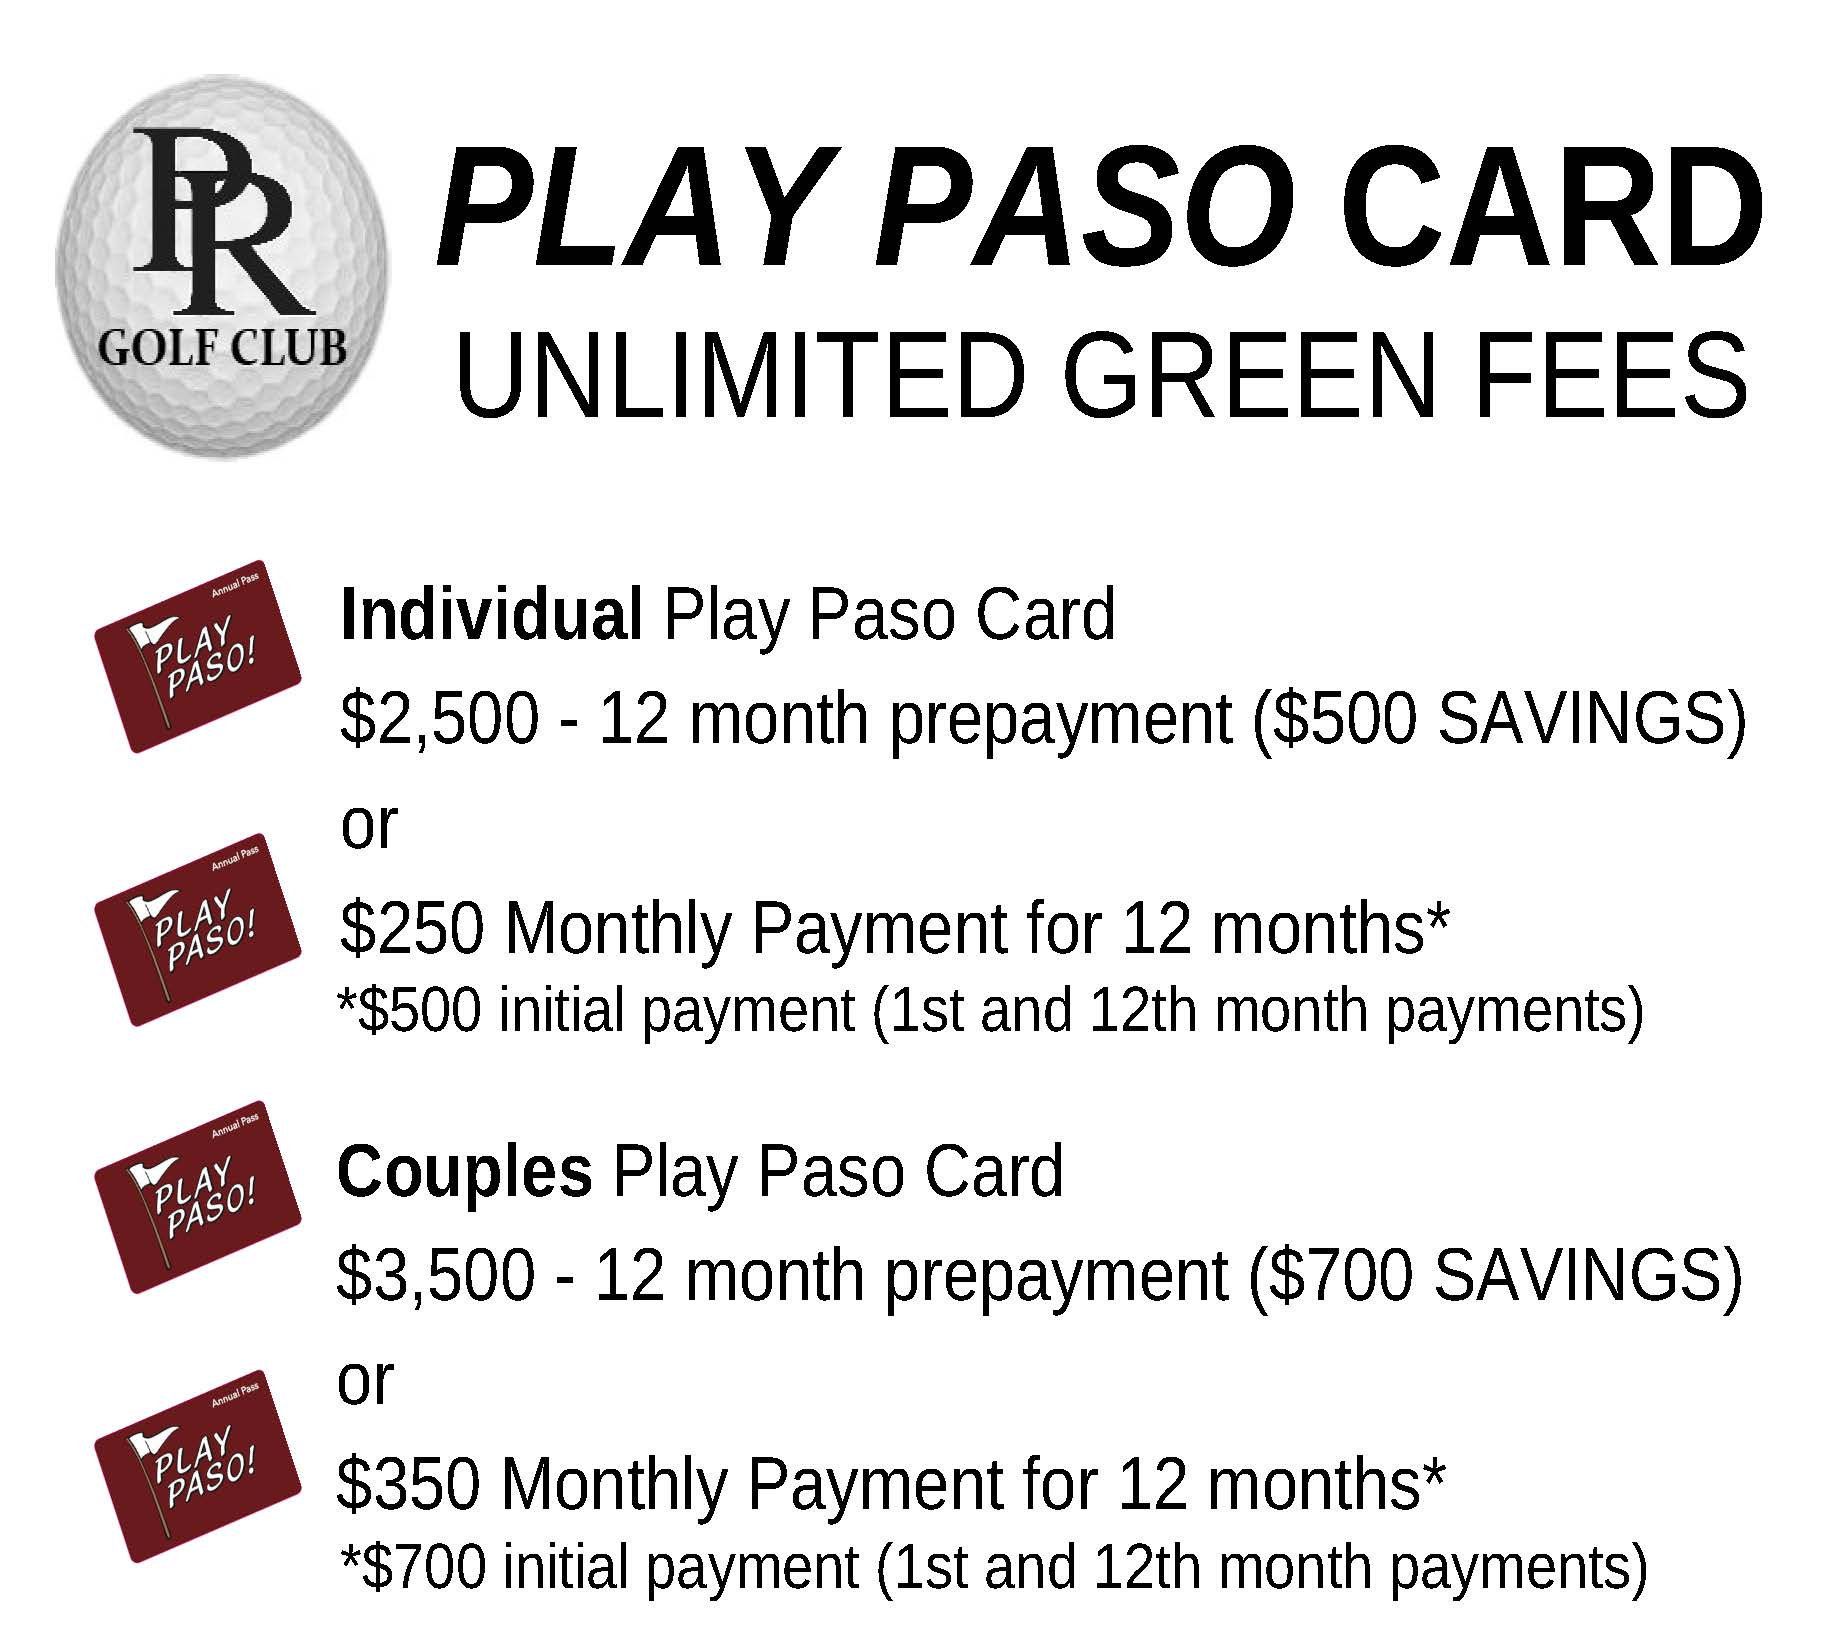 PLAY PASO CARD INFO